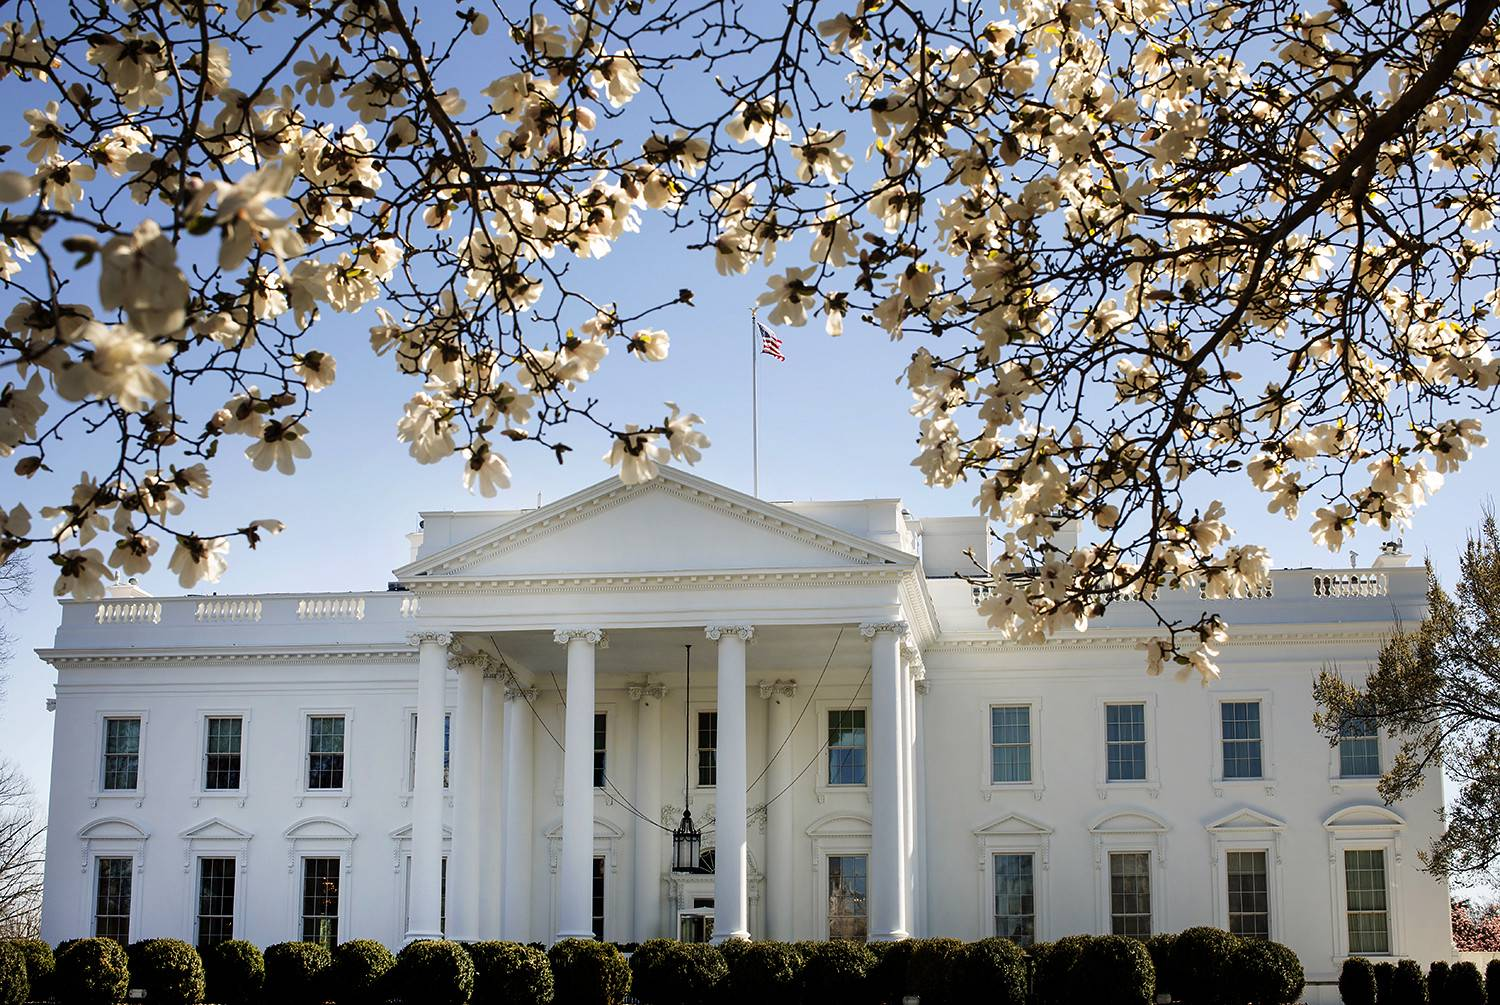 The White House North Lawn, March 26, 2019 on the North Lawn.